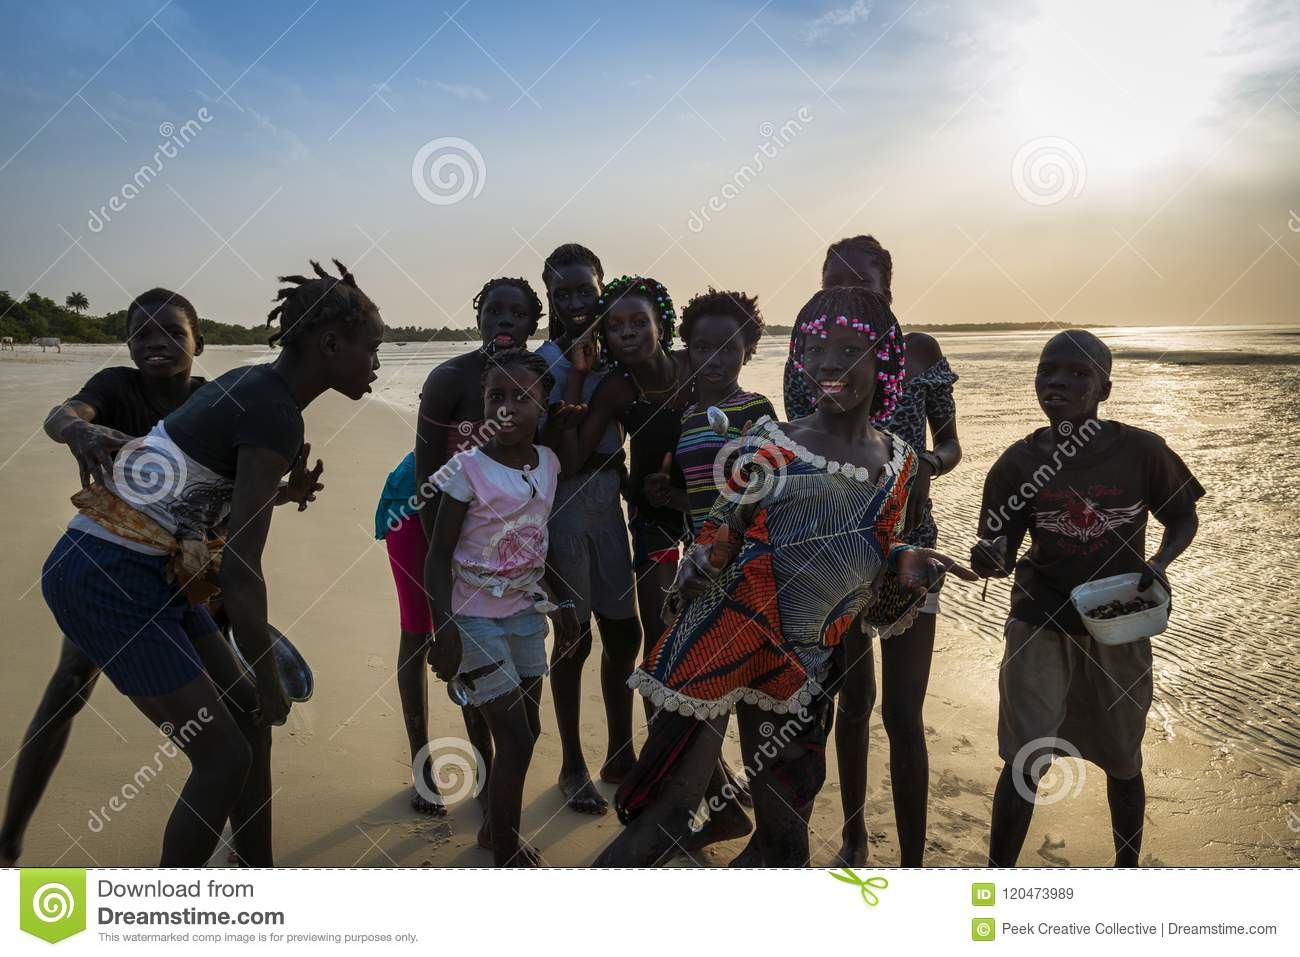 Group of children playing by the beach in the island of Orango at sunset, in Guinea Bissau